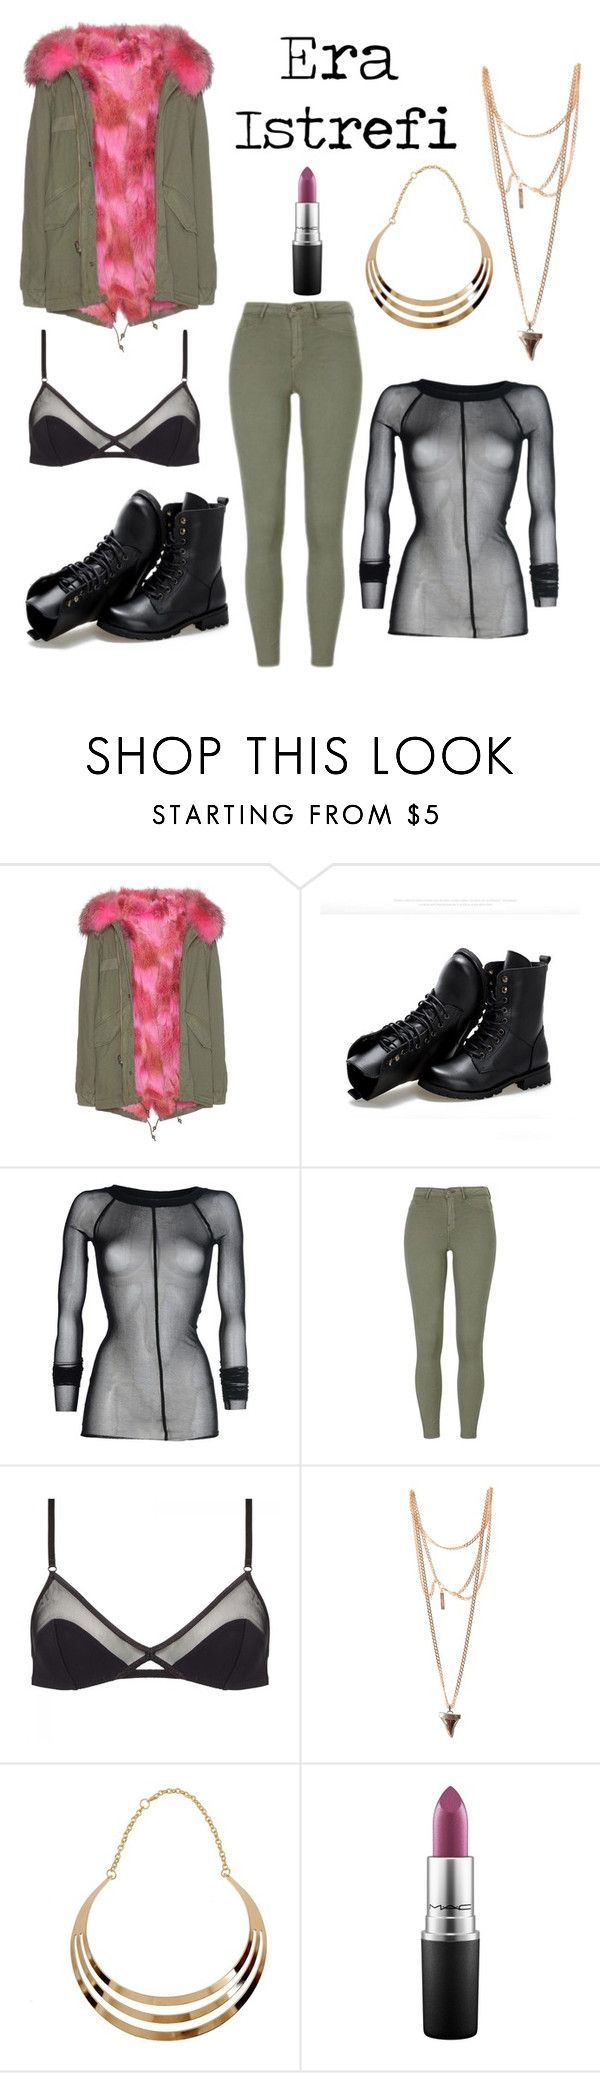 """""""Inspired by:Era Istrefi"""" by lunaly123 ❤ liked on Polyvore featuring Mr & Mrs Italy, Sunsteps, Plein Sud Jeanius, Ysé, Givenchy and MAC Cosmetics"""